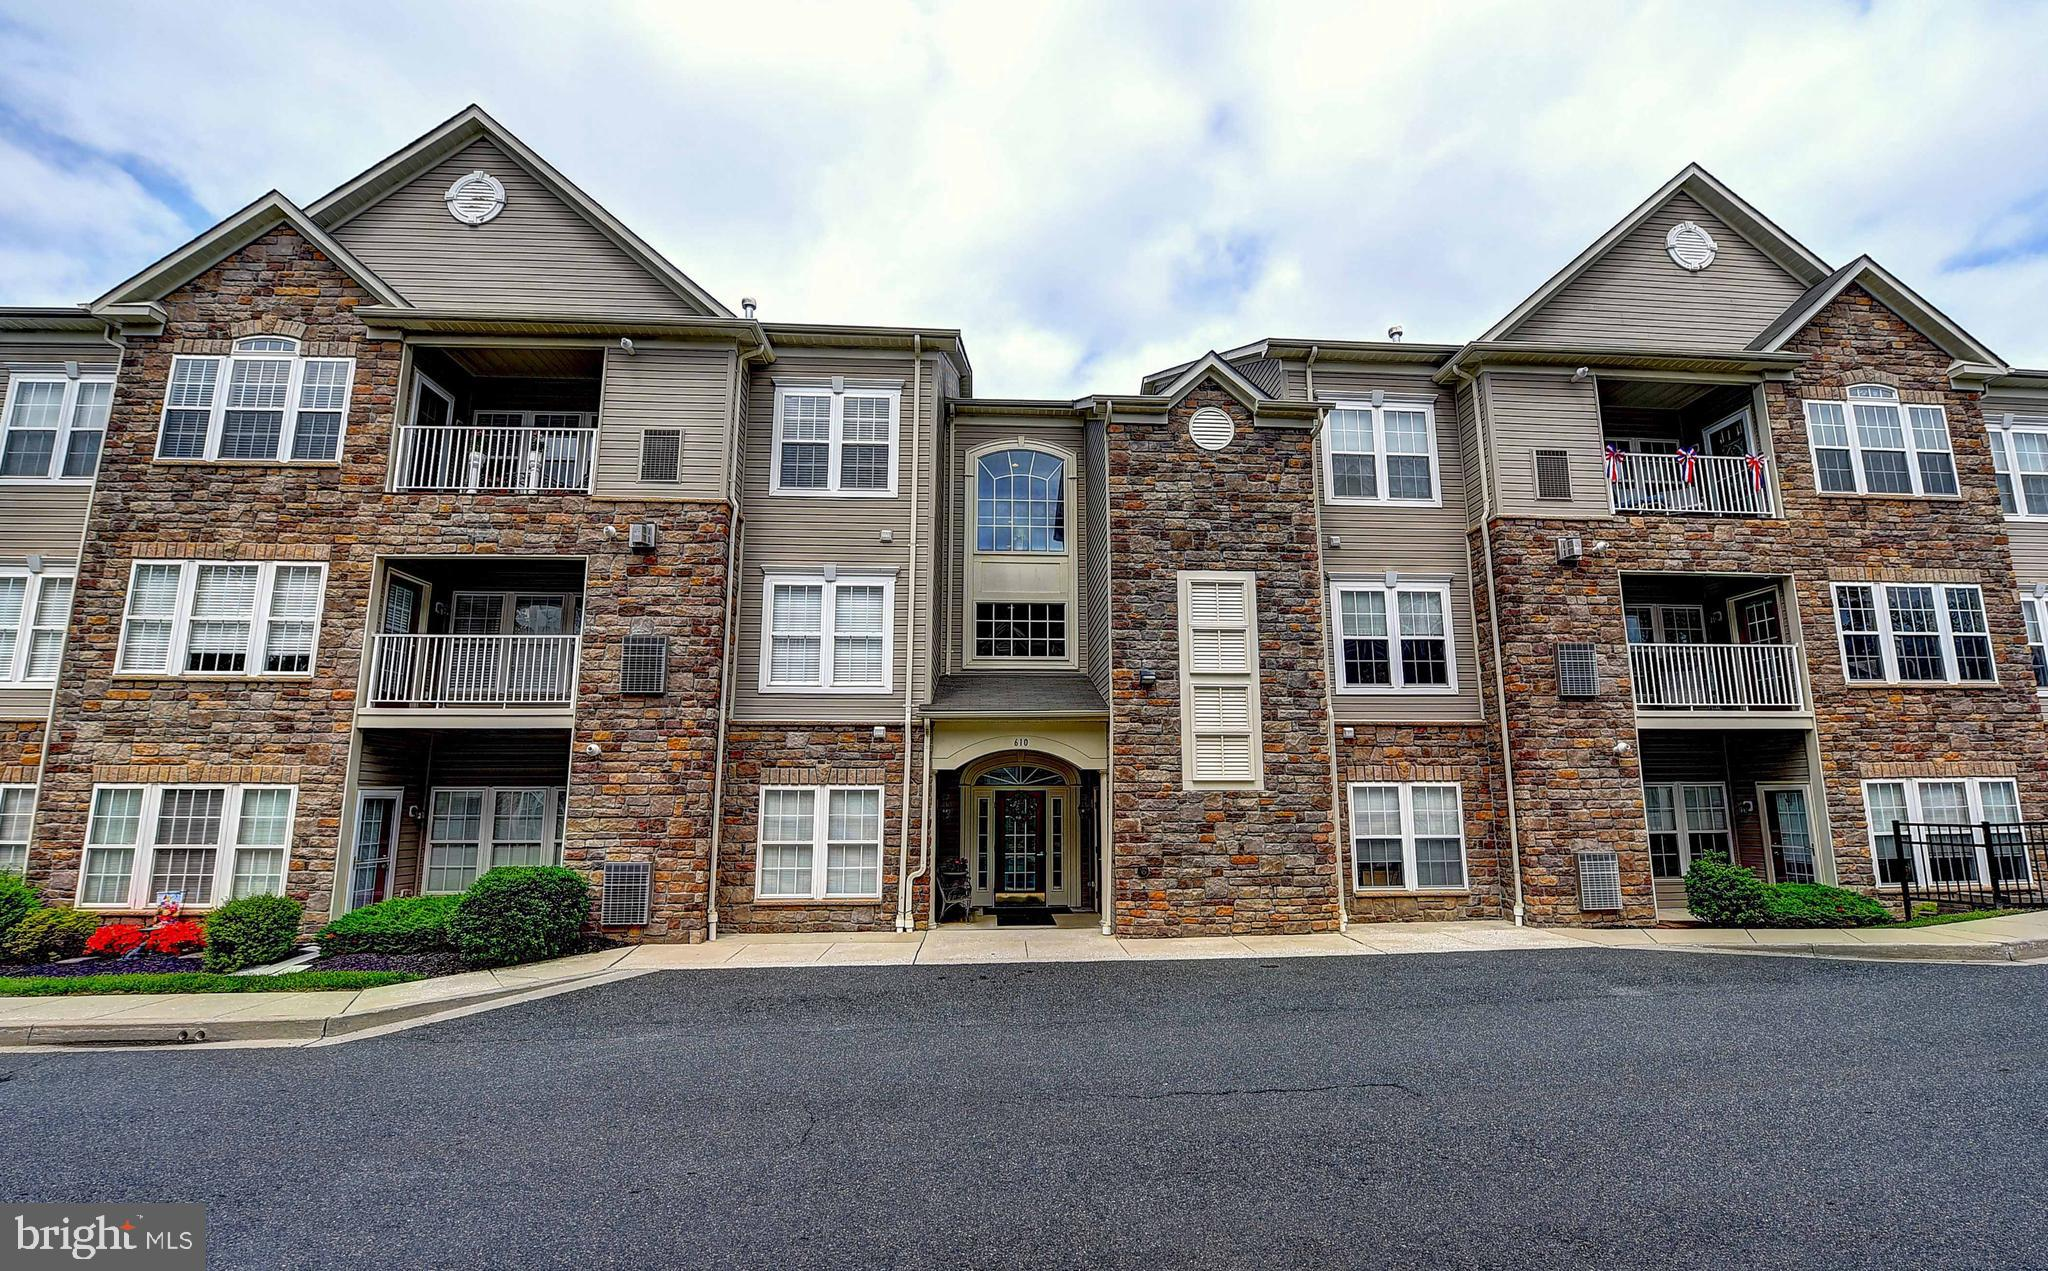 """MOTIVATED TO SELL!!! ... Don't miss this one! Make yourself right at home in this beautiful & well cared for 55+ condo in the sought after Moore's Mill Crossing.  Offering many fine features and amenities with  two spacious bedrooms including an owner's suite with a wonderful sitting room and huge walk-in closet, as well as, a large owner's bath offering a walk in shower with built-in bench, a double bowl vanity & more.  The spacious living room provides plenty of space to entertain family and friends and opens to a large dining room.   You'll love the kitchen with 42"""" maple cabinetry,  Corian countertops, Travertine backsplash, and breakfast bar.  A light filled sunroom is just steps from your kitchen and living room and offers a French door to your own private balcony.  A secure entrance provides peace of mind and an elevator provides easy access to your home. Don't hesitate...be ready to call it HOME today!"""